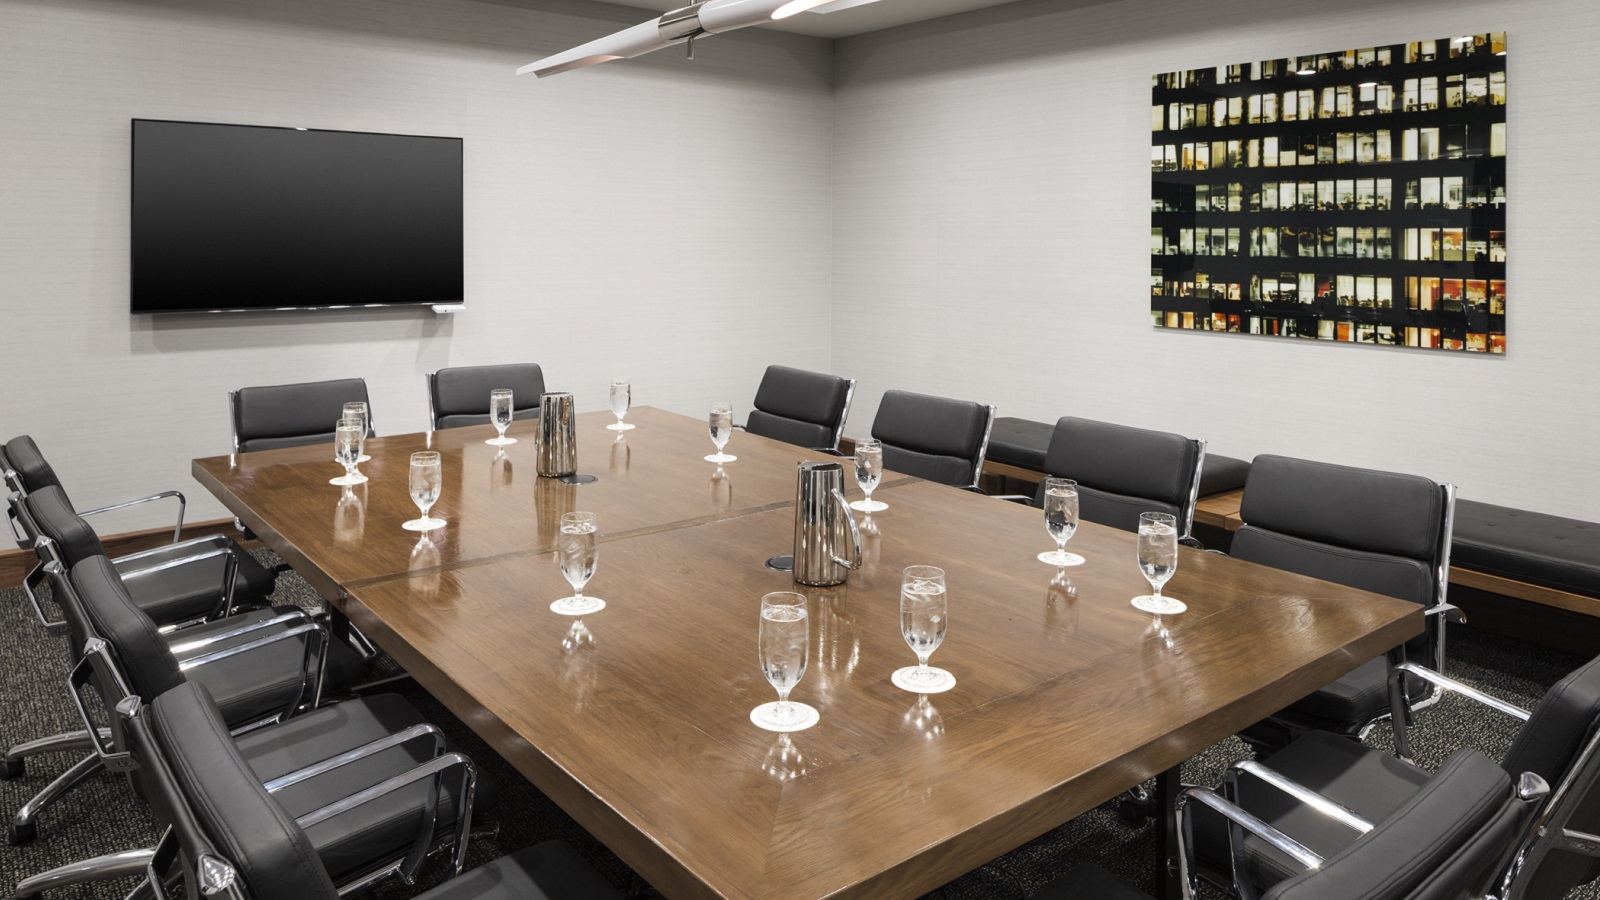 host your Oak Brook IL Meetings in one of our small meetings spaces